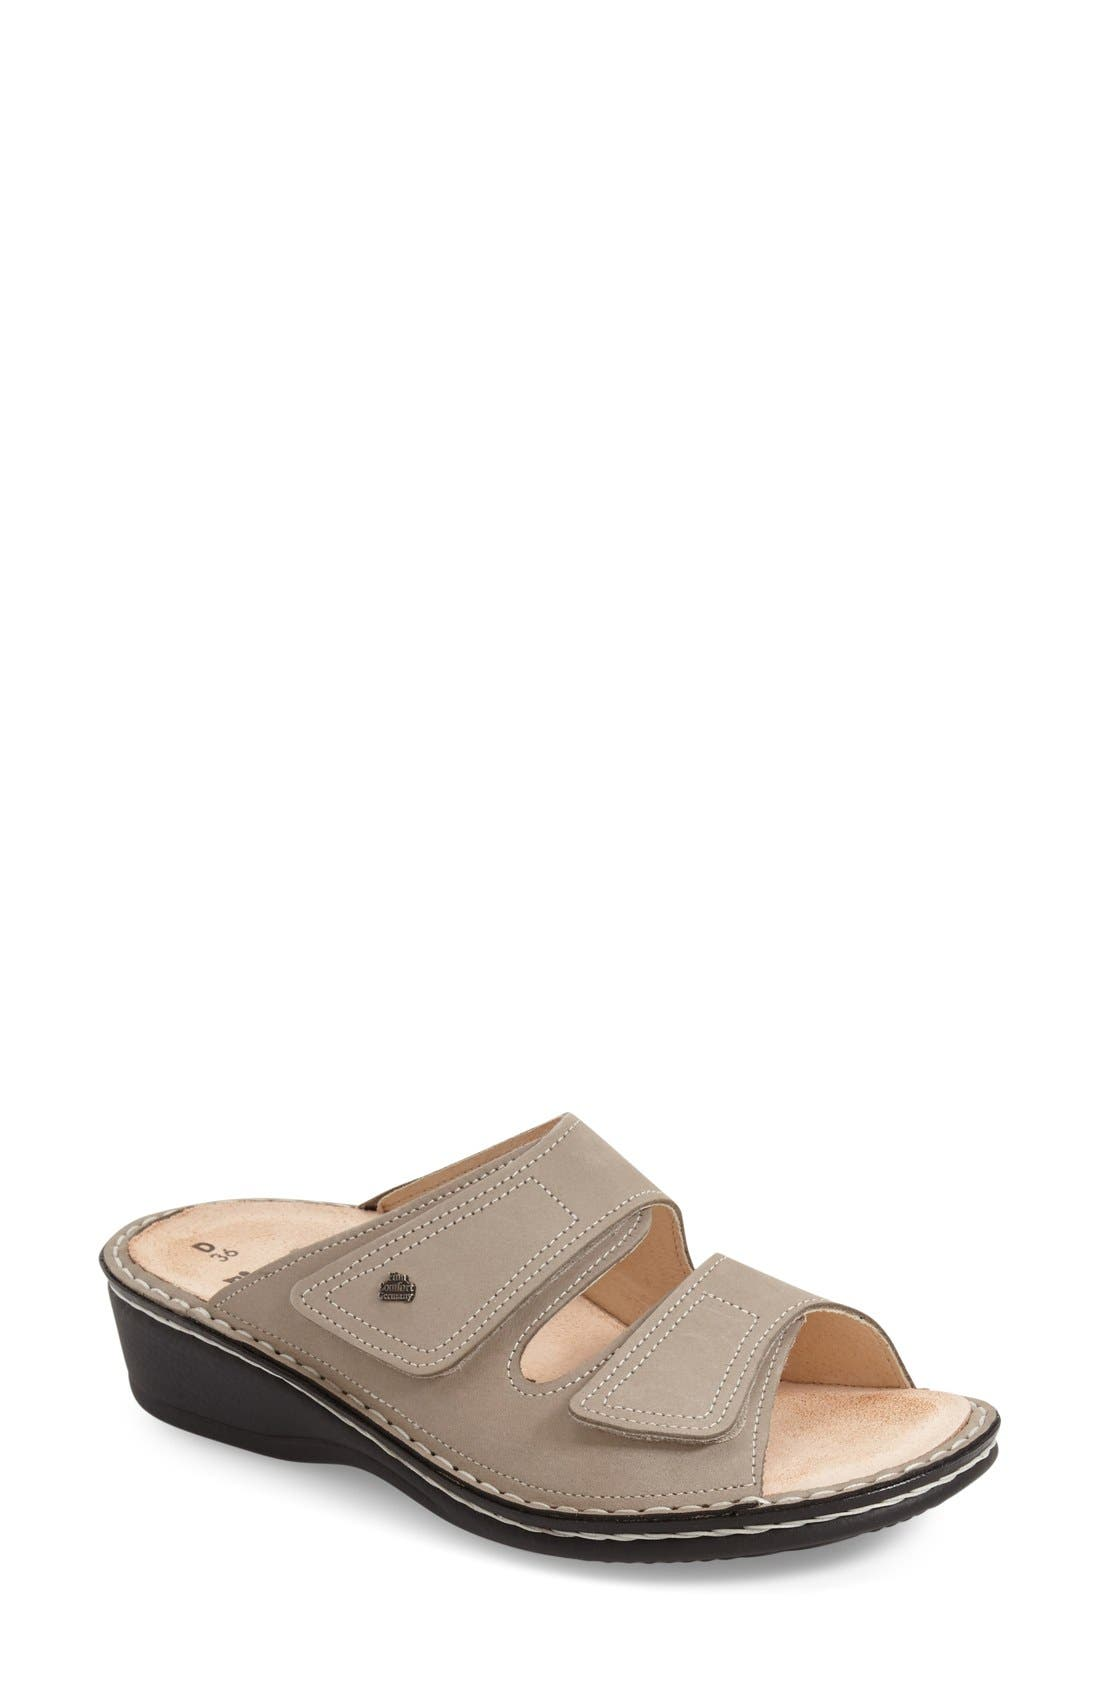 Alternate Image 1 Selected - Finn 'Jamaica' Sandal (Women)